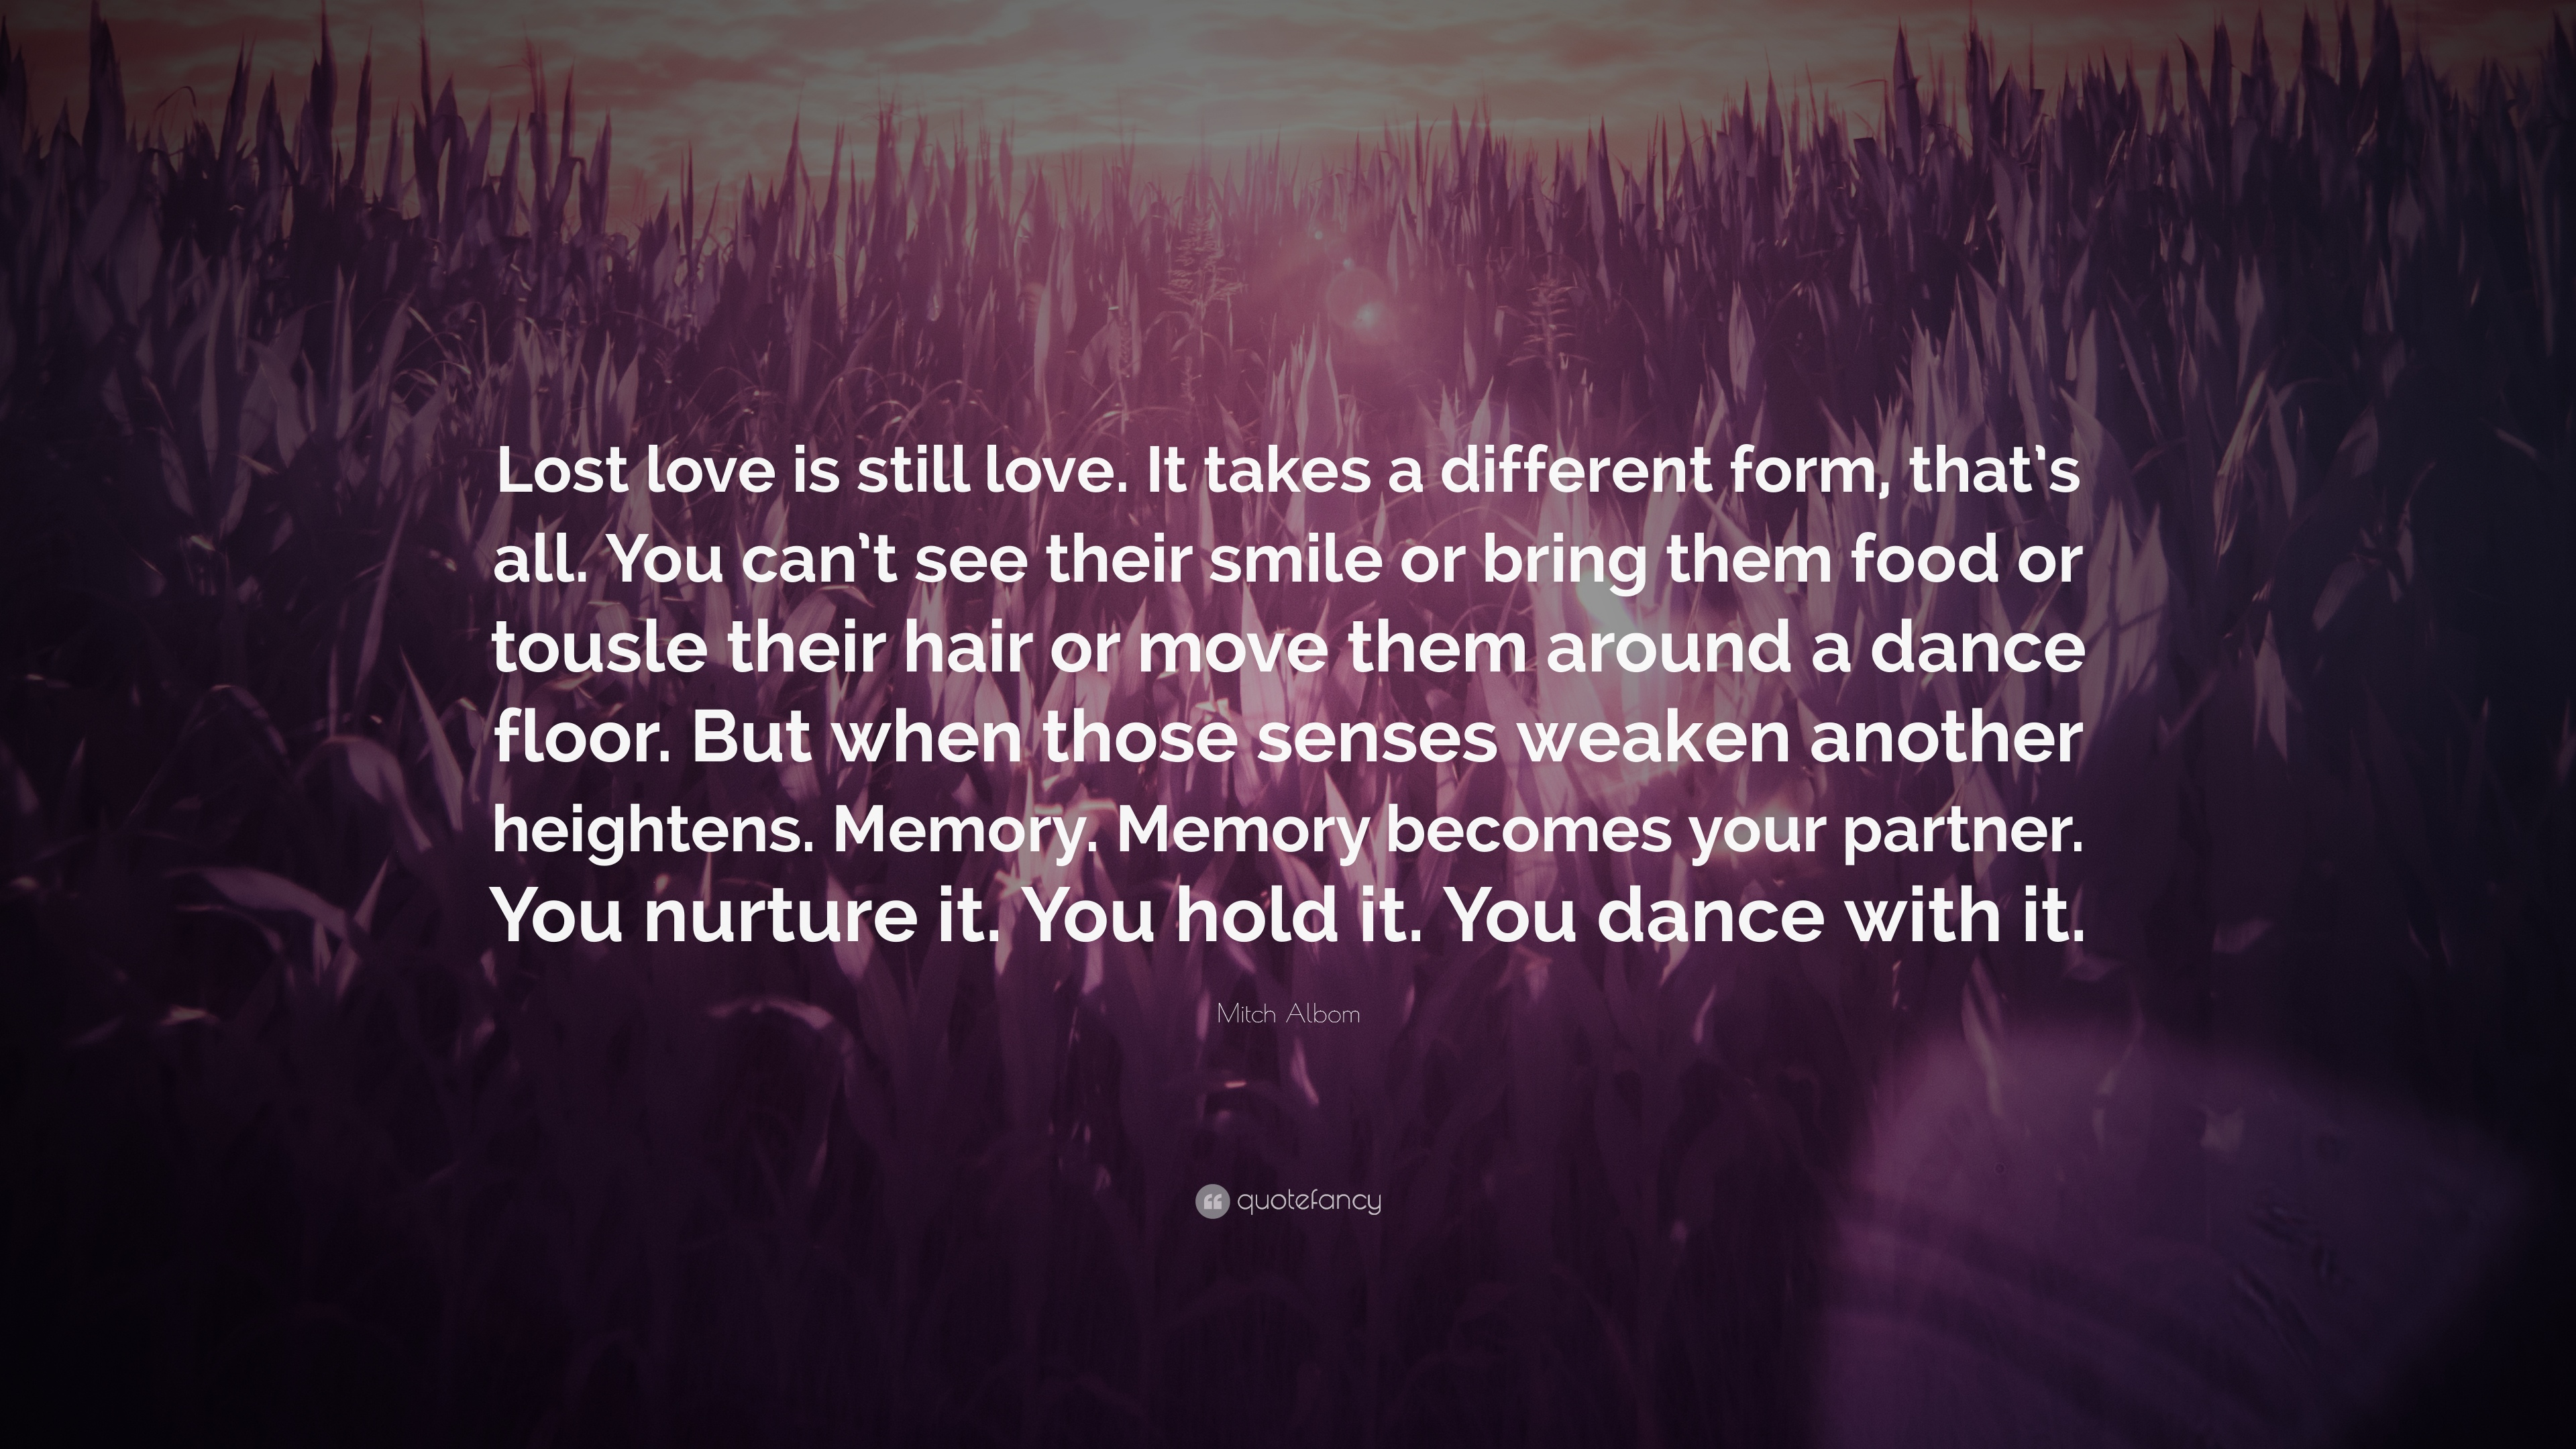 Love Quotes For Lost Love: Lost Love Is Still Love